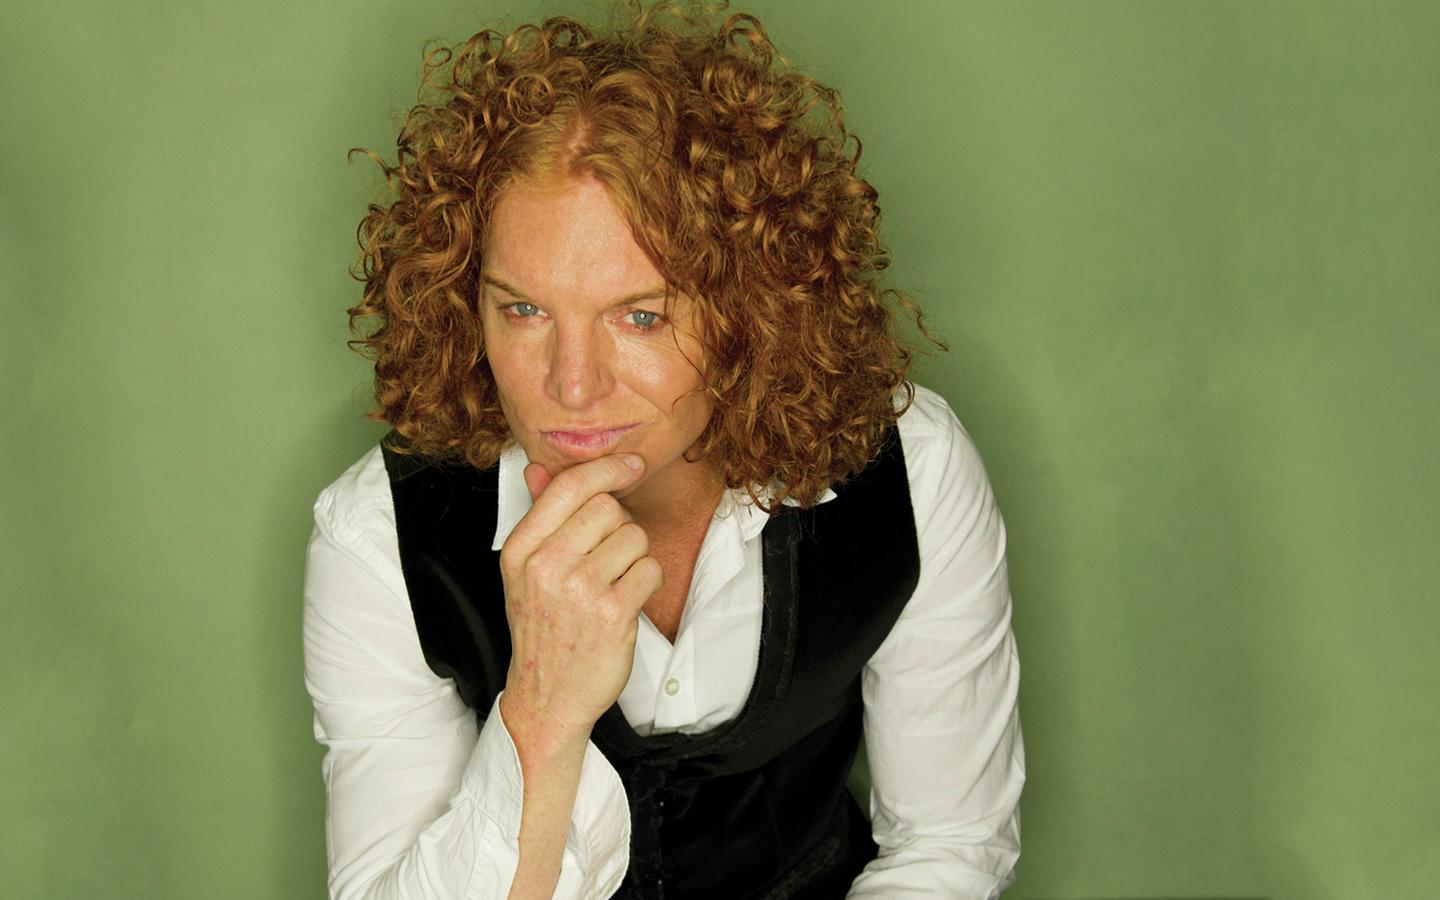 Carrot Top net worth